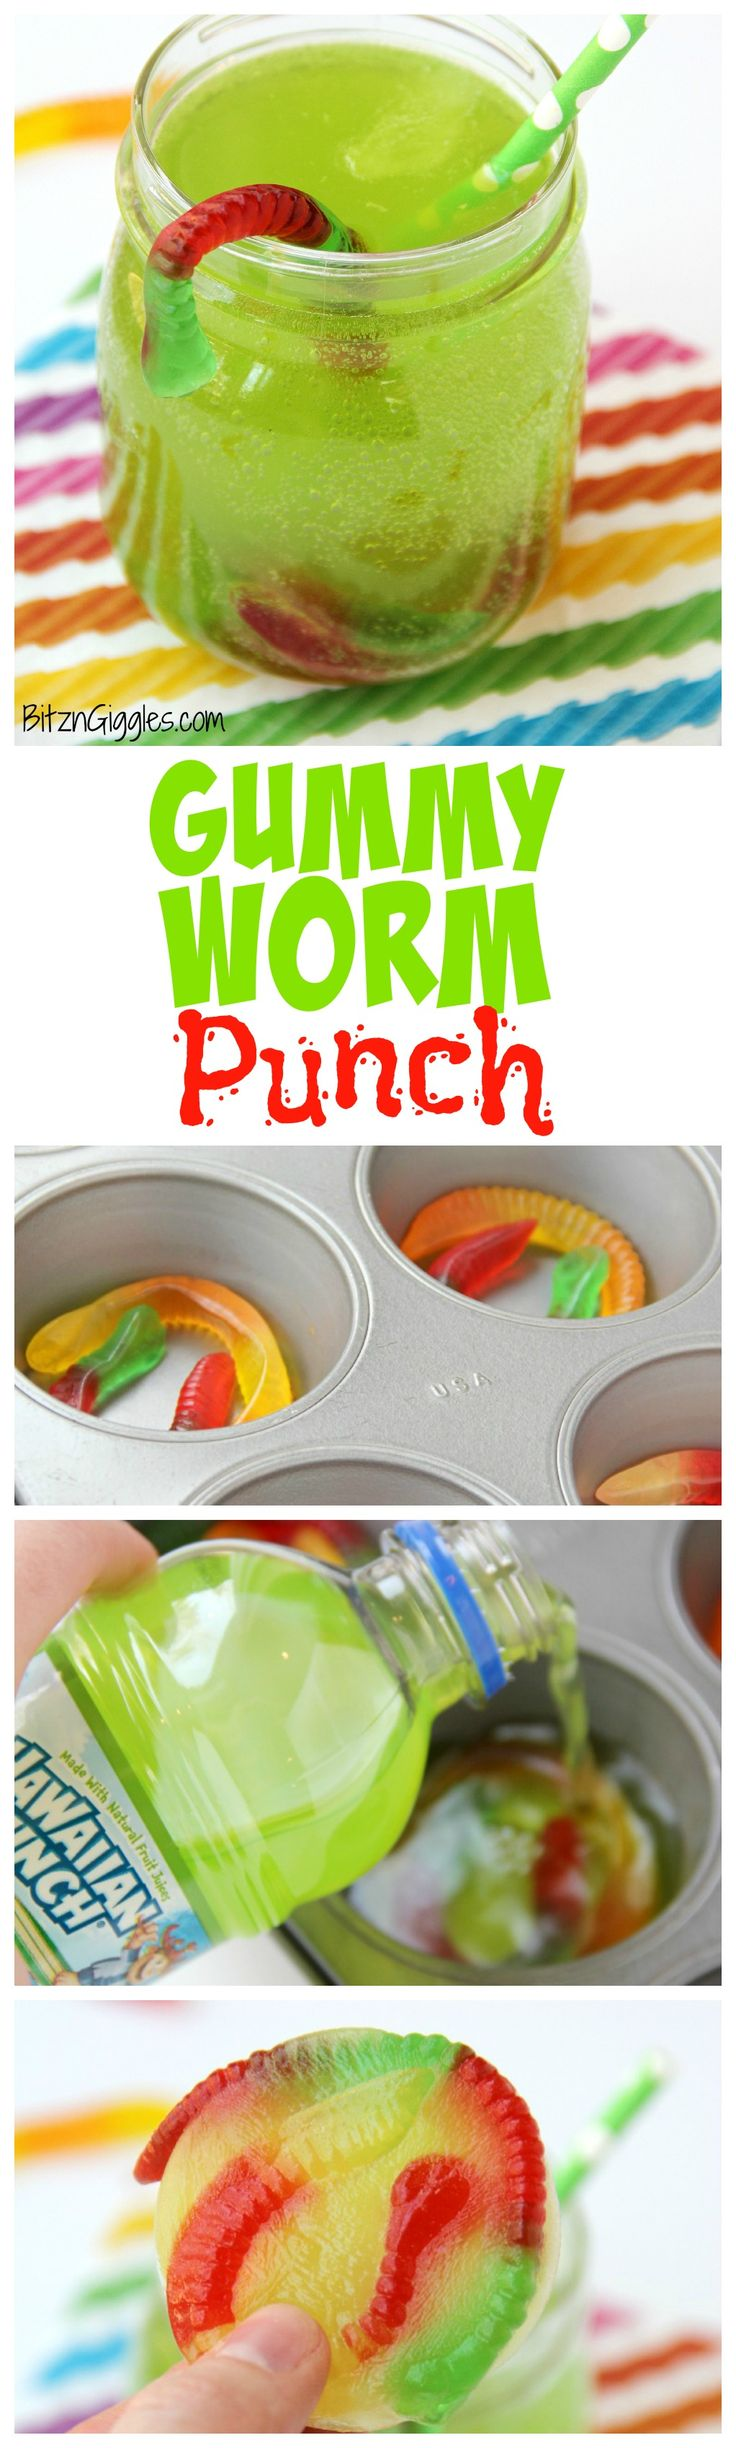 Gummy Worm Punch - Kids will love sipping on this drink in the summer! Great idea for birthday parties, St. Patrick's Day, Halloween and Christmas (Grinch punch) too! Gummy worms are frozen in a punch mixture and emerge from the ice as the drink is enjoyed! So much fun!